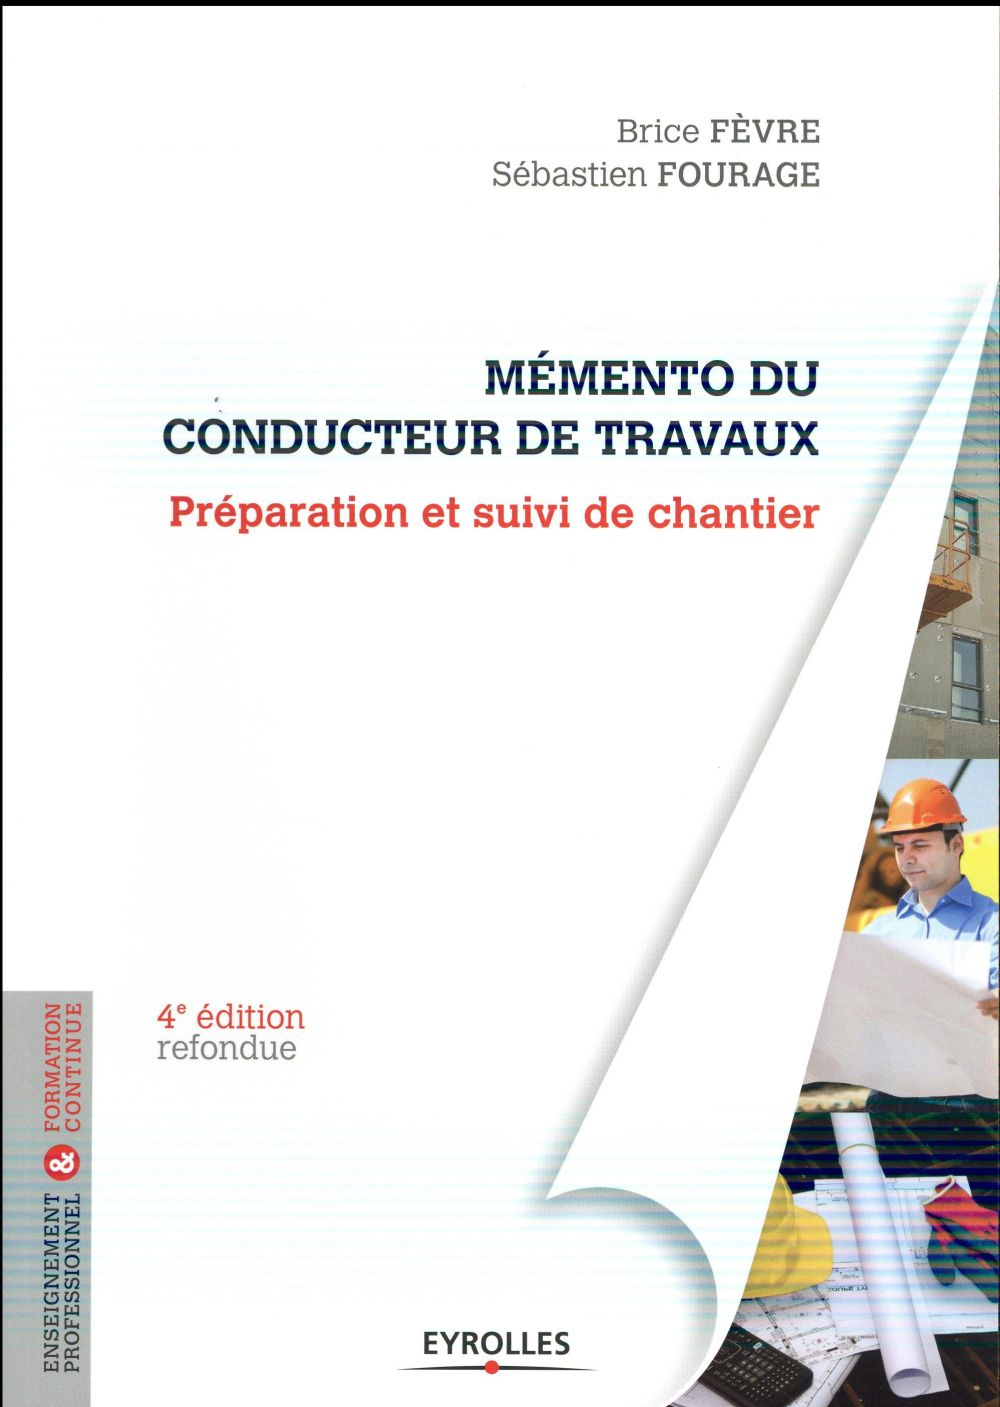 MEMENTO DU CONDUCTEUR DE TRAVAUX